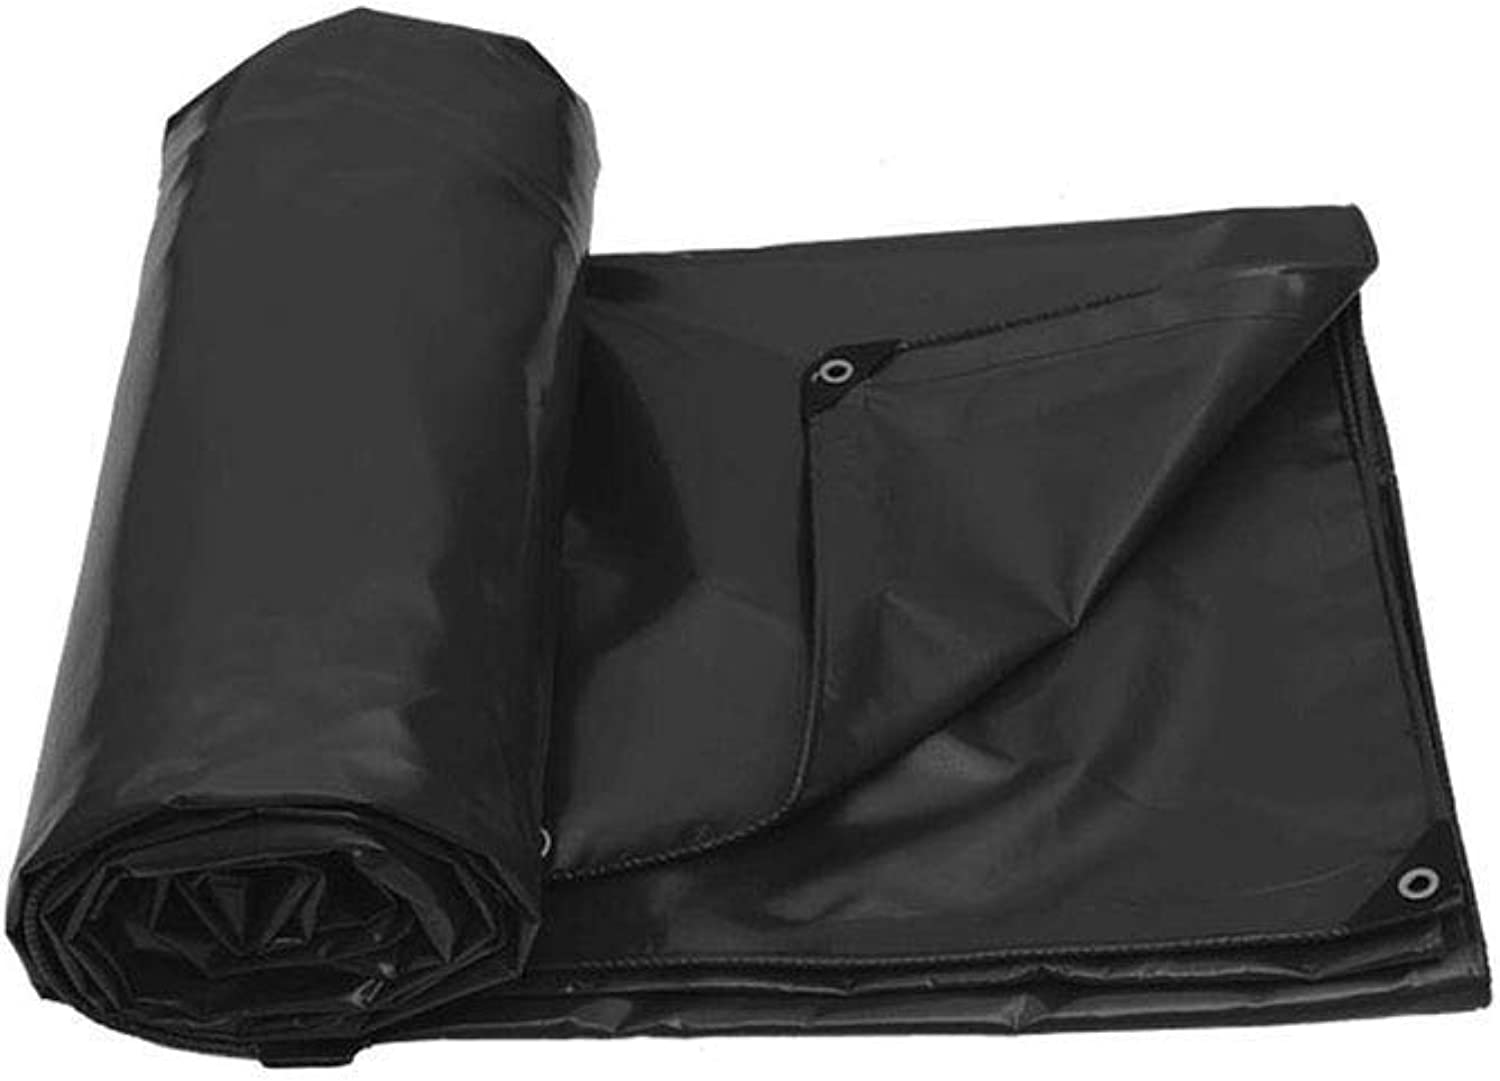 Outdoor Rainy Season Thick Double Waterproof Tarpaulin MultiFunctional Predective Tarpaulin Available in Various Size (color   Black, Size   3X3M)